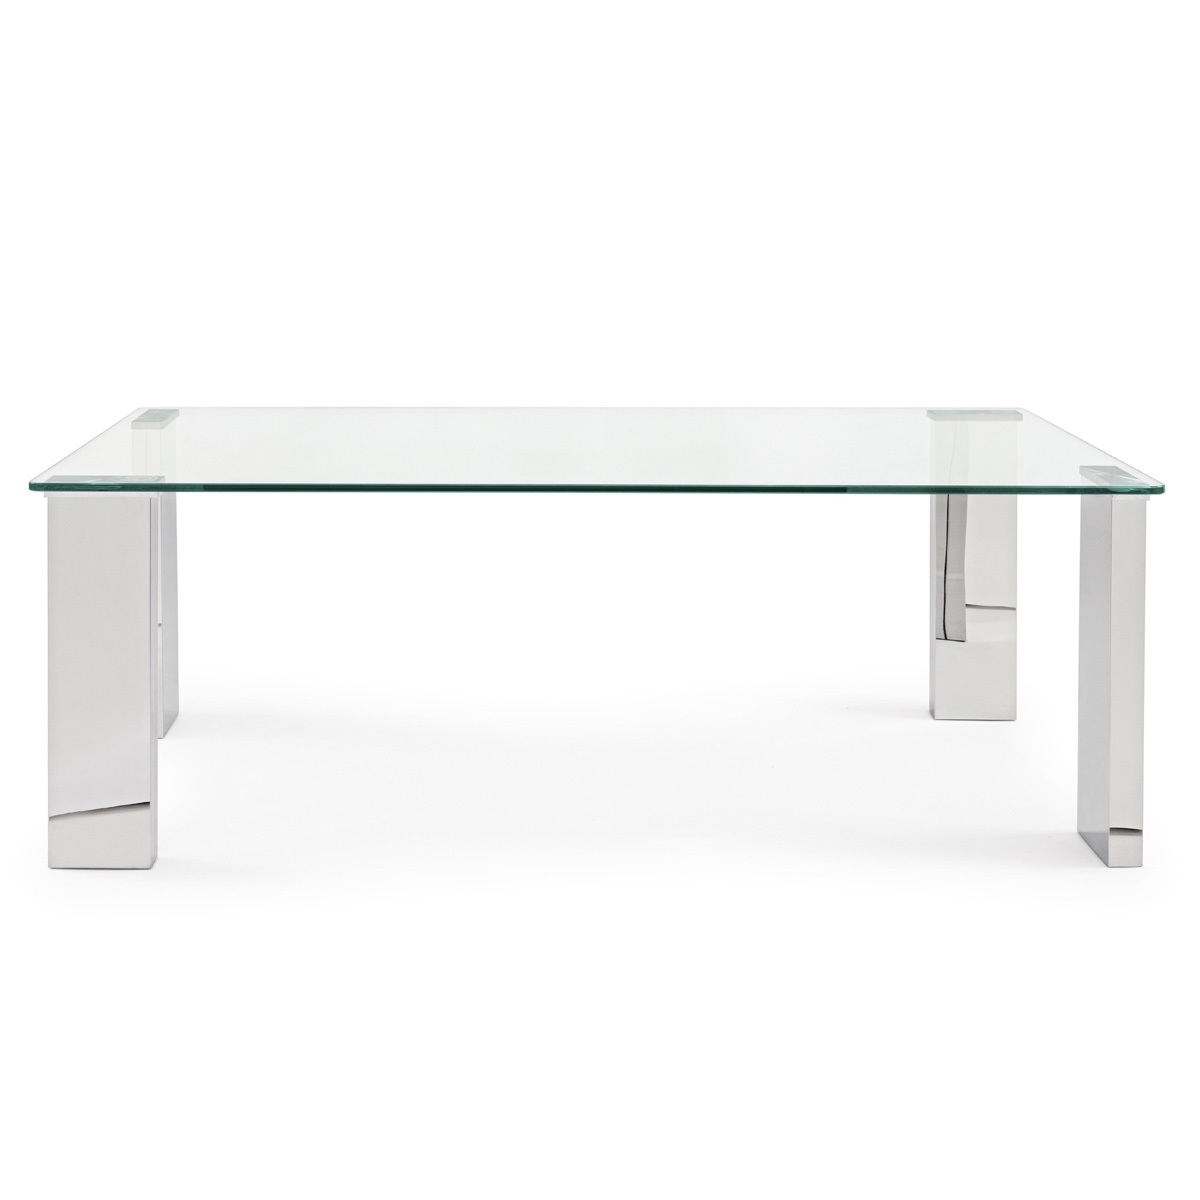 Photos 2: Bizzotto Rectangular table in glass l. 120 x 60 0731955